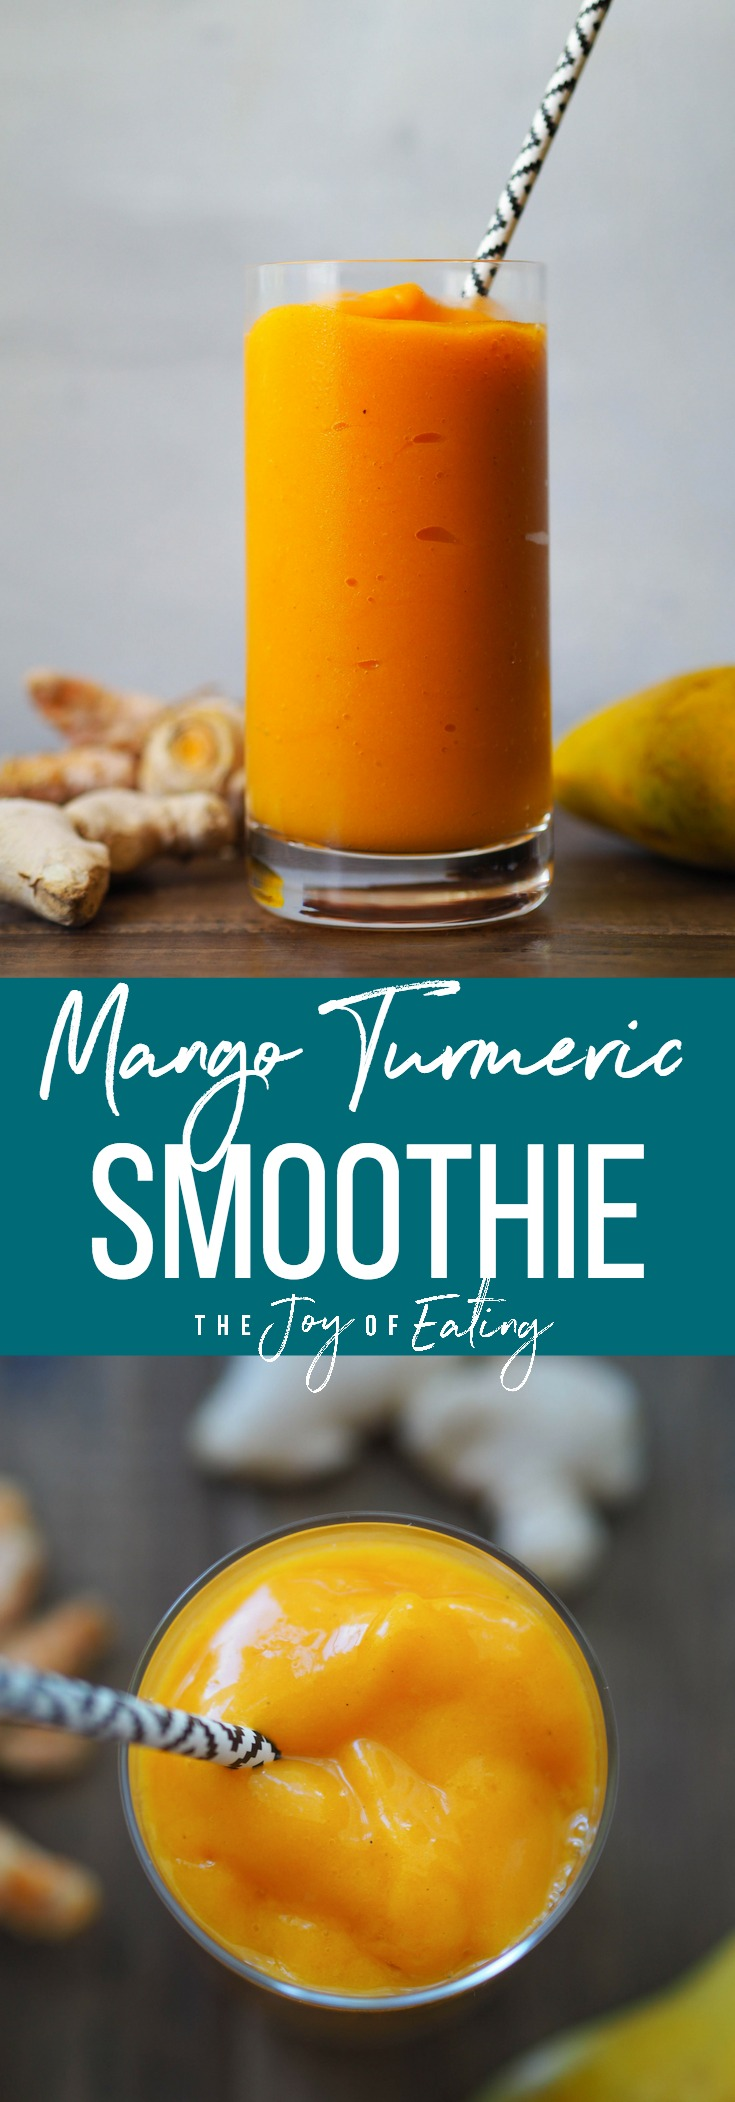 Make this creamy and refreshing mango turmeric smoothie! Packed with antioxidant rich ginger and turmeric for a spicy kick! #smoothie #turmeric #ginger #vegan #breakfast